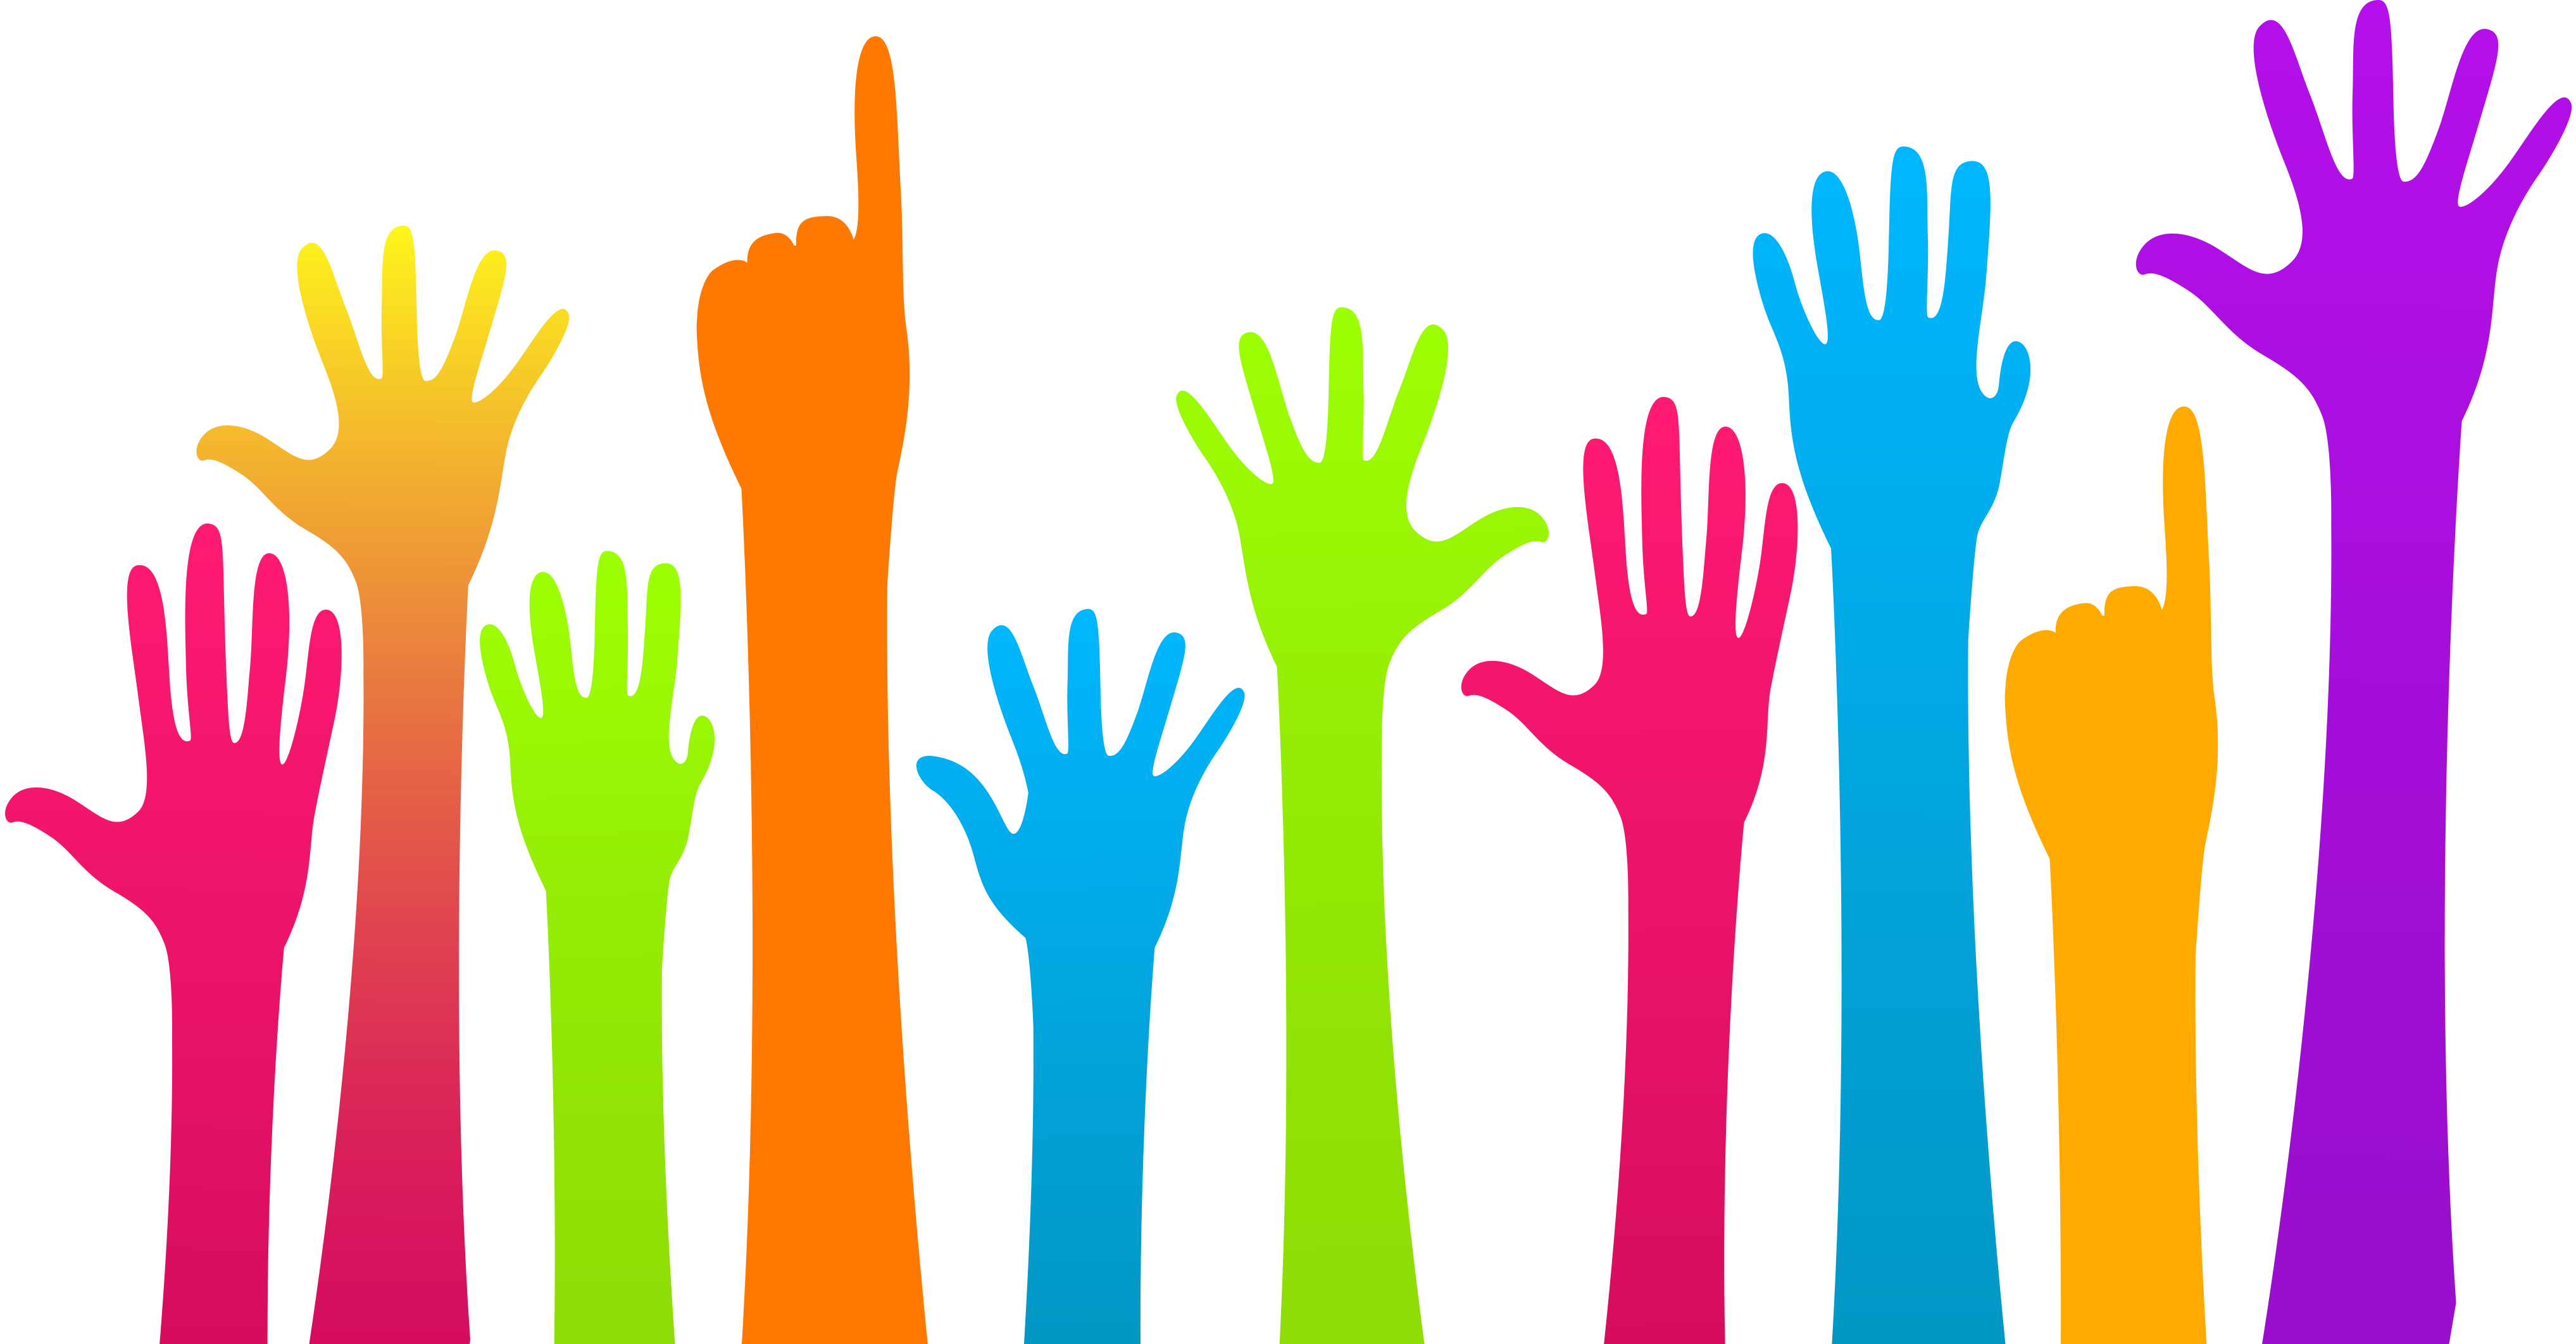 Hands clipart human hand. Student education trade union